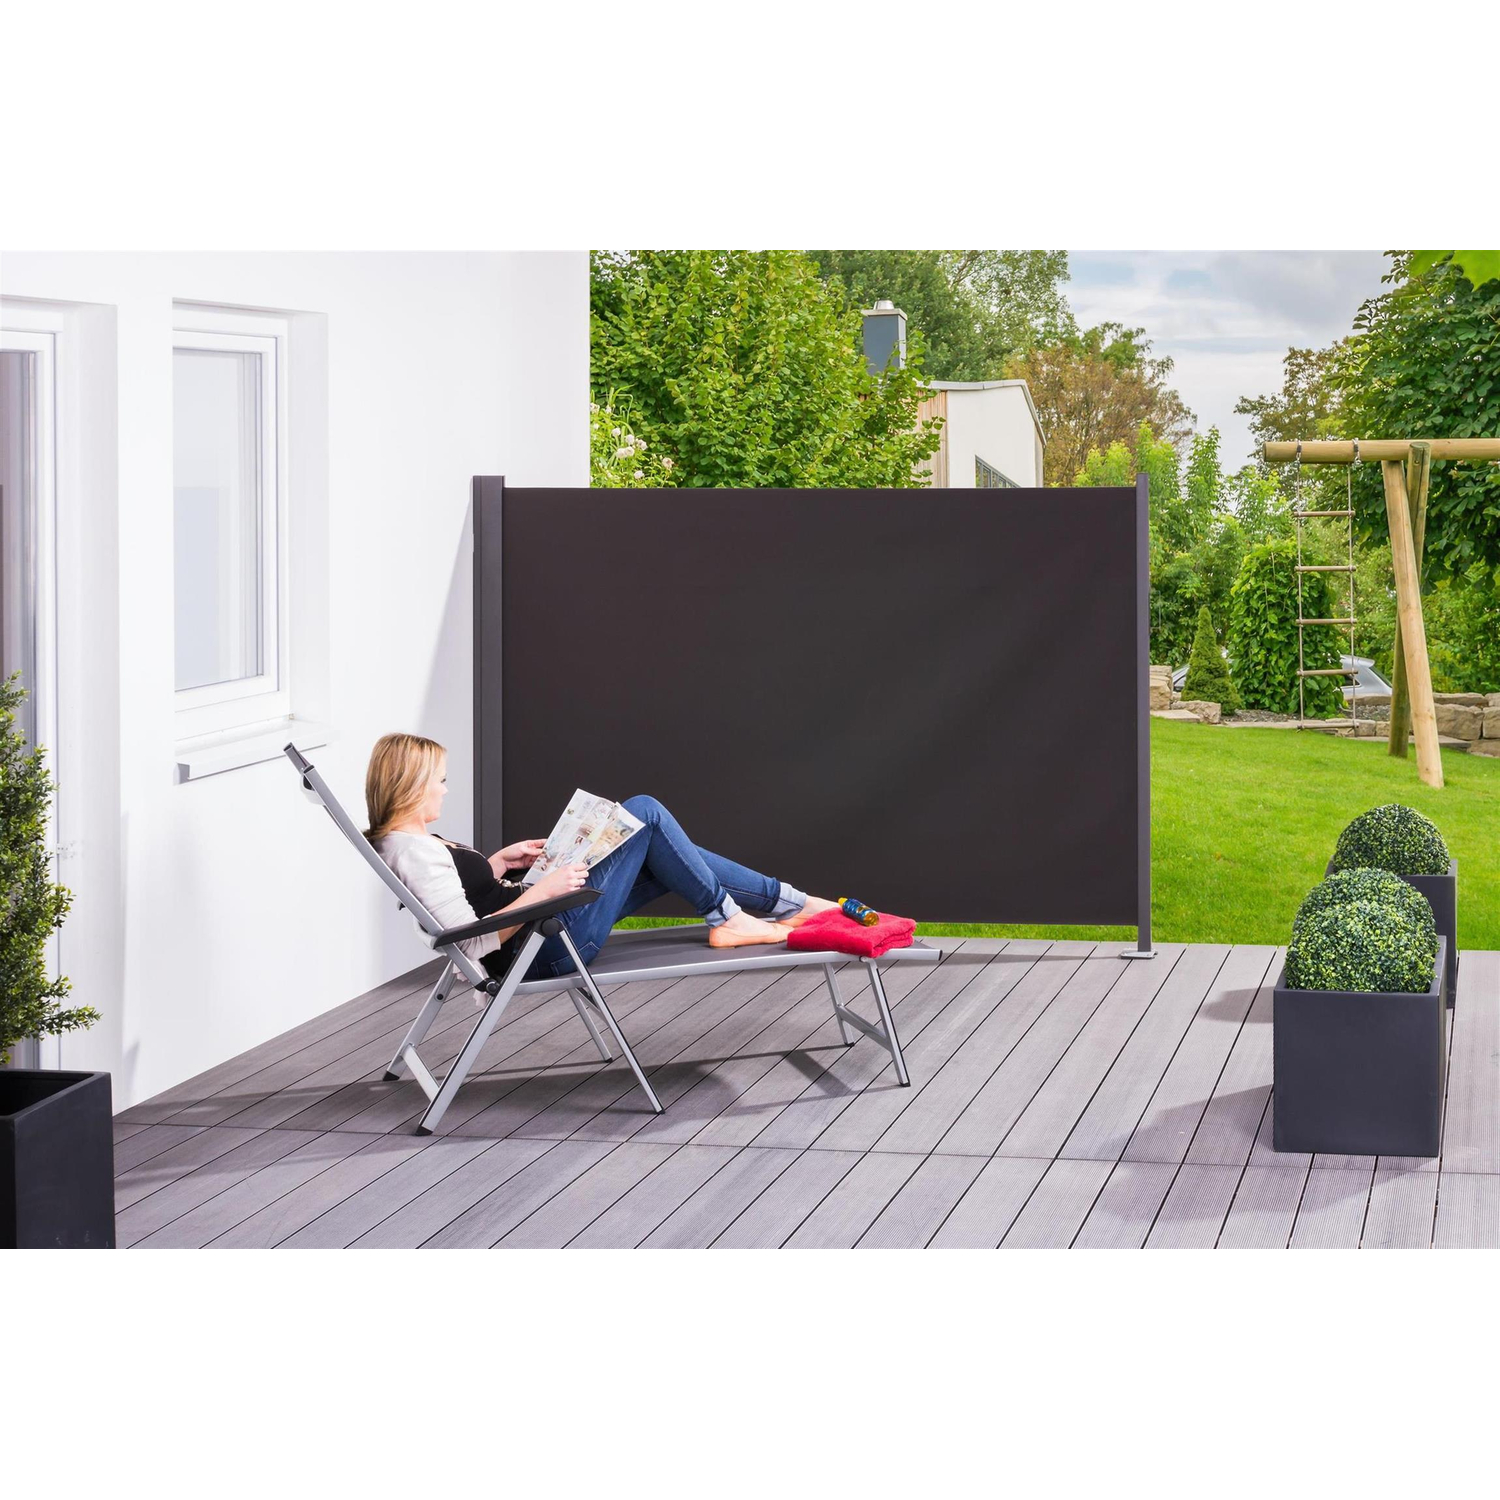 seitenmarkise slim sichtschutz f r die terrasse windschu. Black Bedroom Furniture Sets. Home Design Ideas